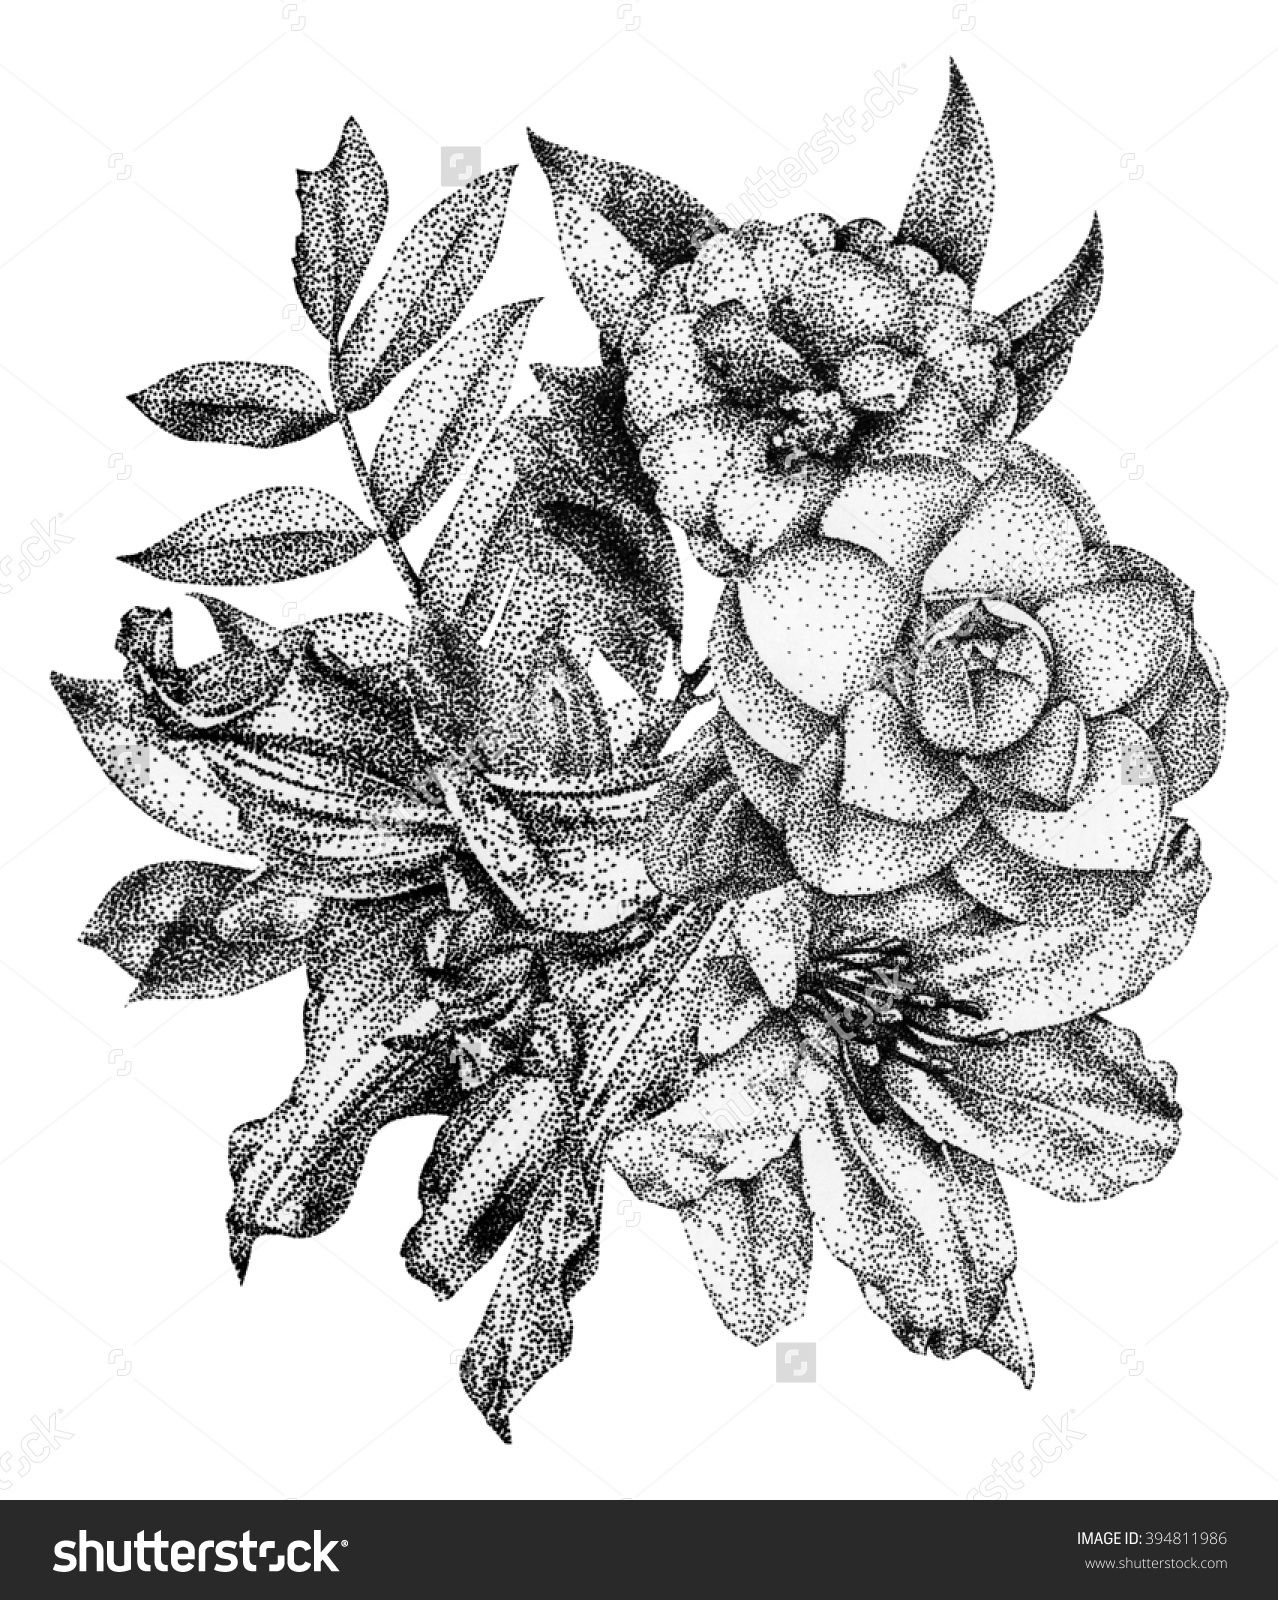 Composition Of Different Spring Flowers And Plants Drawn By Hand With Black Ink Graphic Drawing